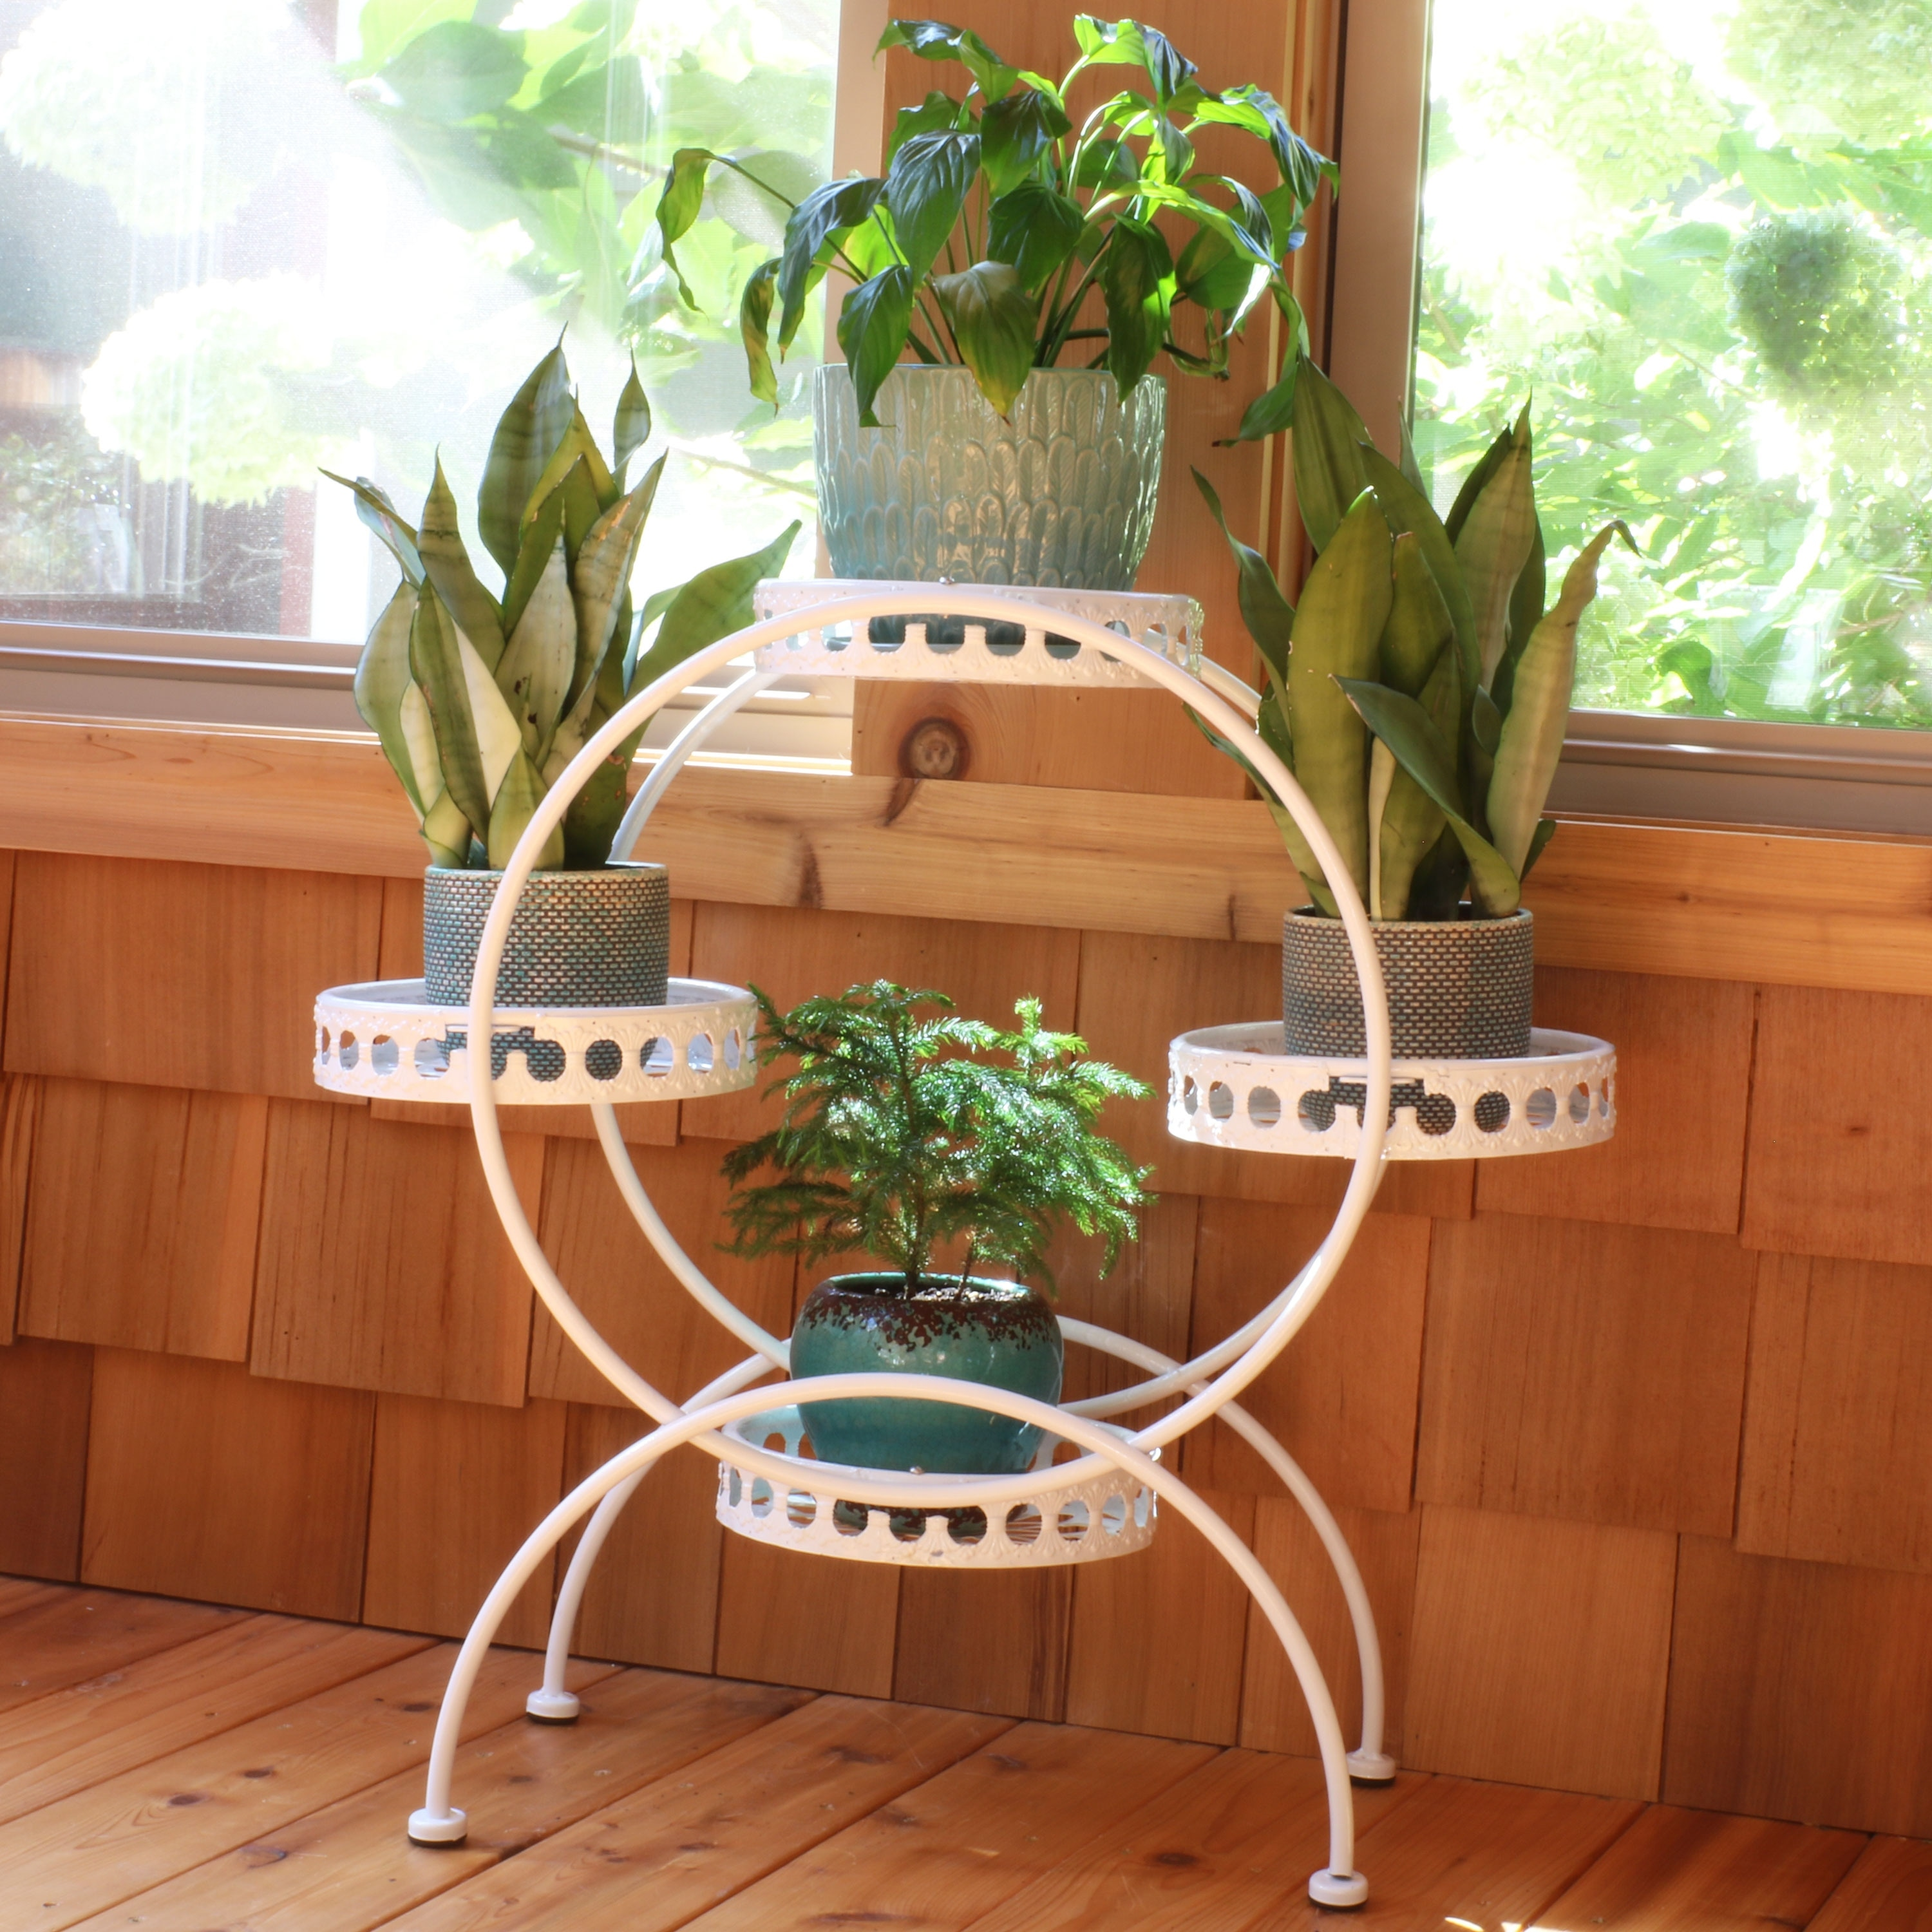 Shop Sunnydaze 4 Tier Ferris Wheel Indoor Outdoor Plant And Flower